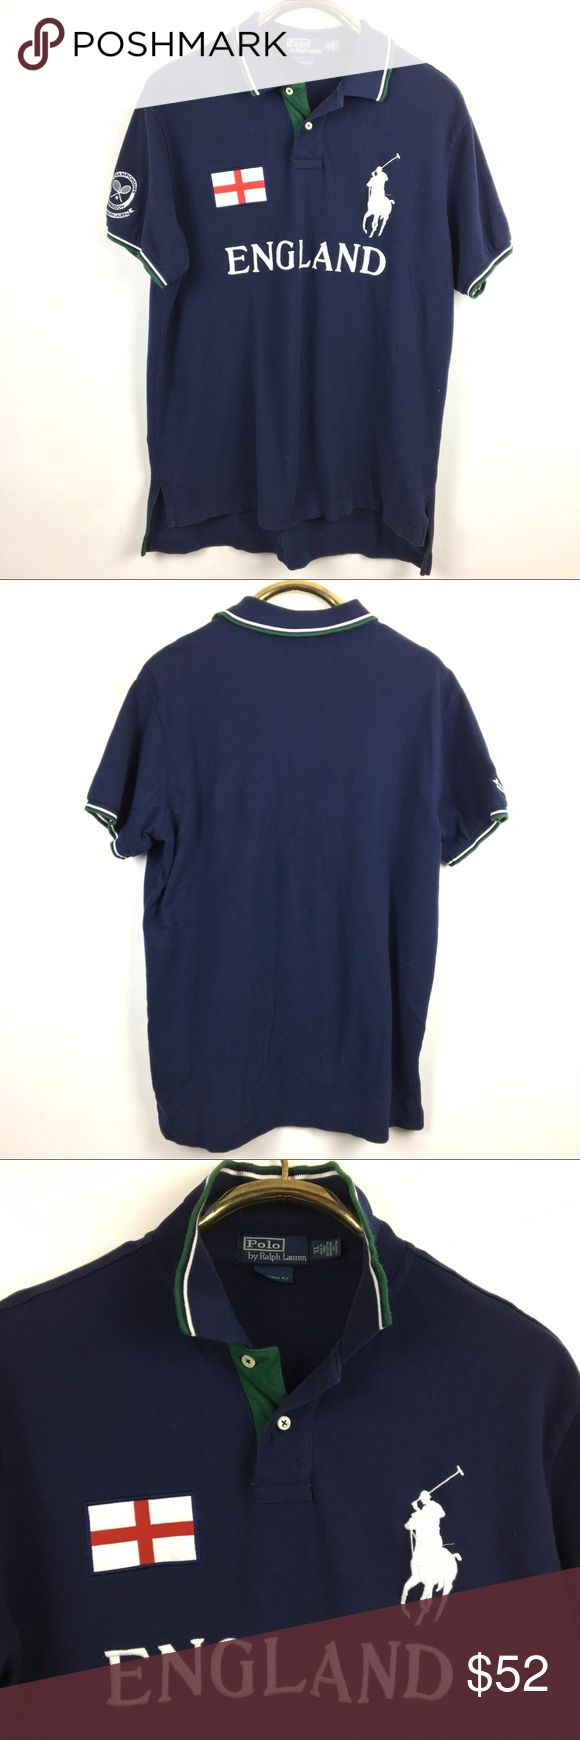 """MENS Polo Ralph Lauren ENGLAND shirt Classic polo by Ralph Lauren. Left chest features embroidered 5""""  iconic polo player. ENGLAND embroidered on the front chest. English flag patch on right chest. Wimbledon patch on right sleeve. 2 buttons at neck.  Approximate measurements; armpit xarmpit 23"""" shoulder to front hem 28"""". Original retail $198.00 excellent preowned condition Polo by Ralph Lauren Shirts Polos"""